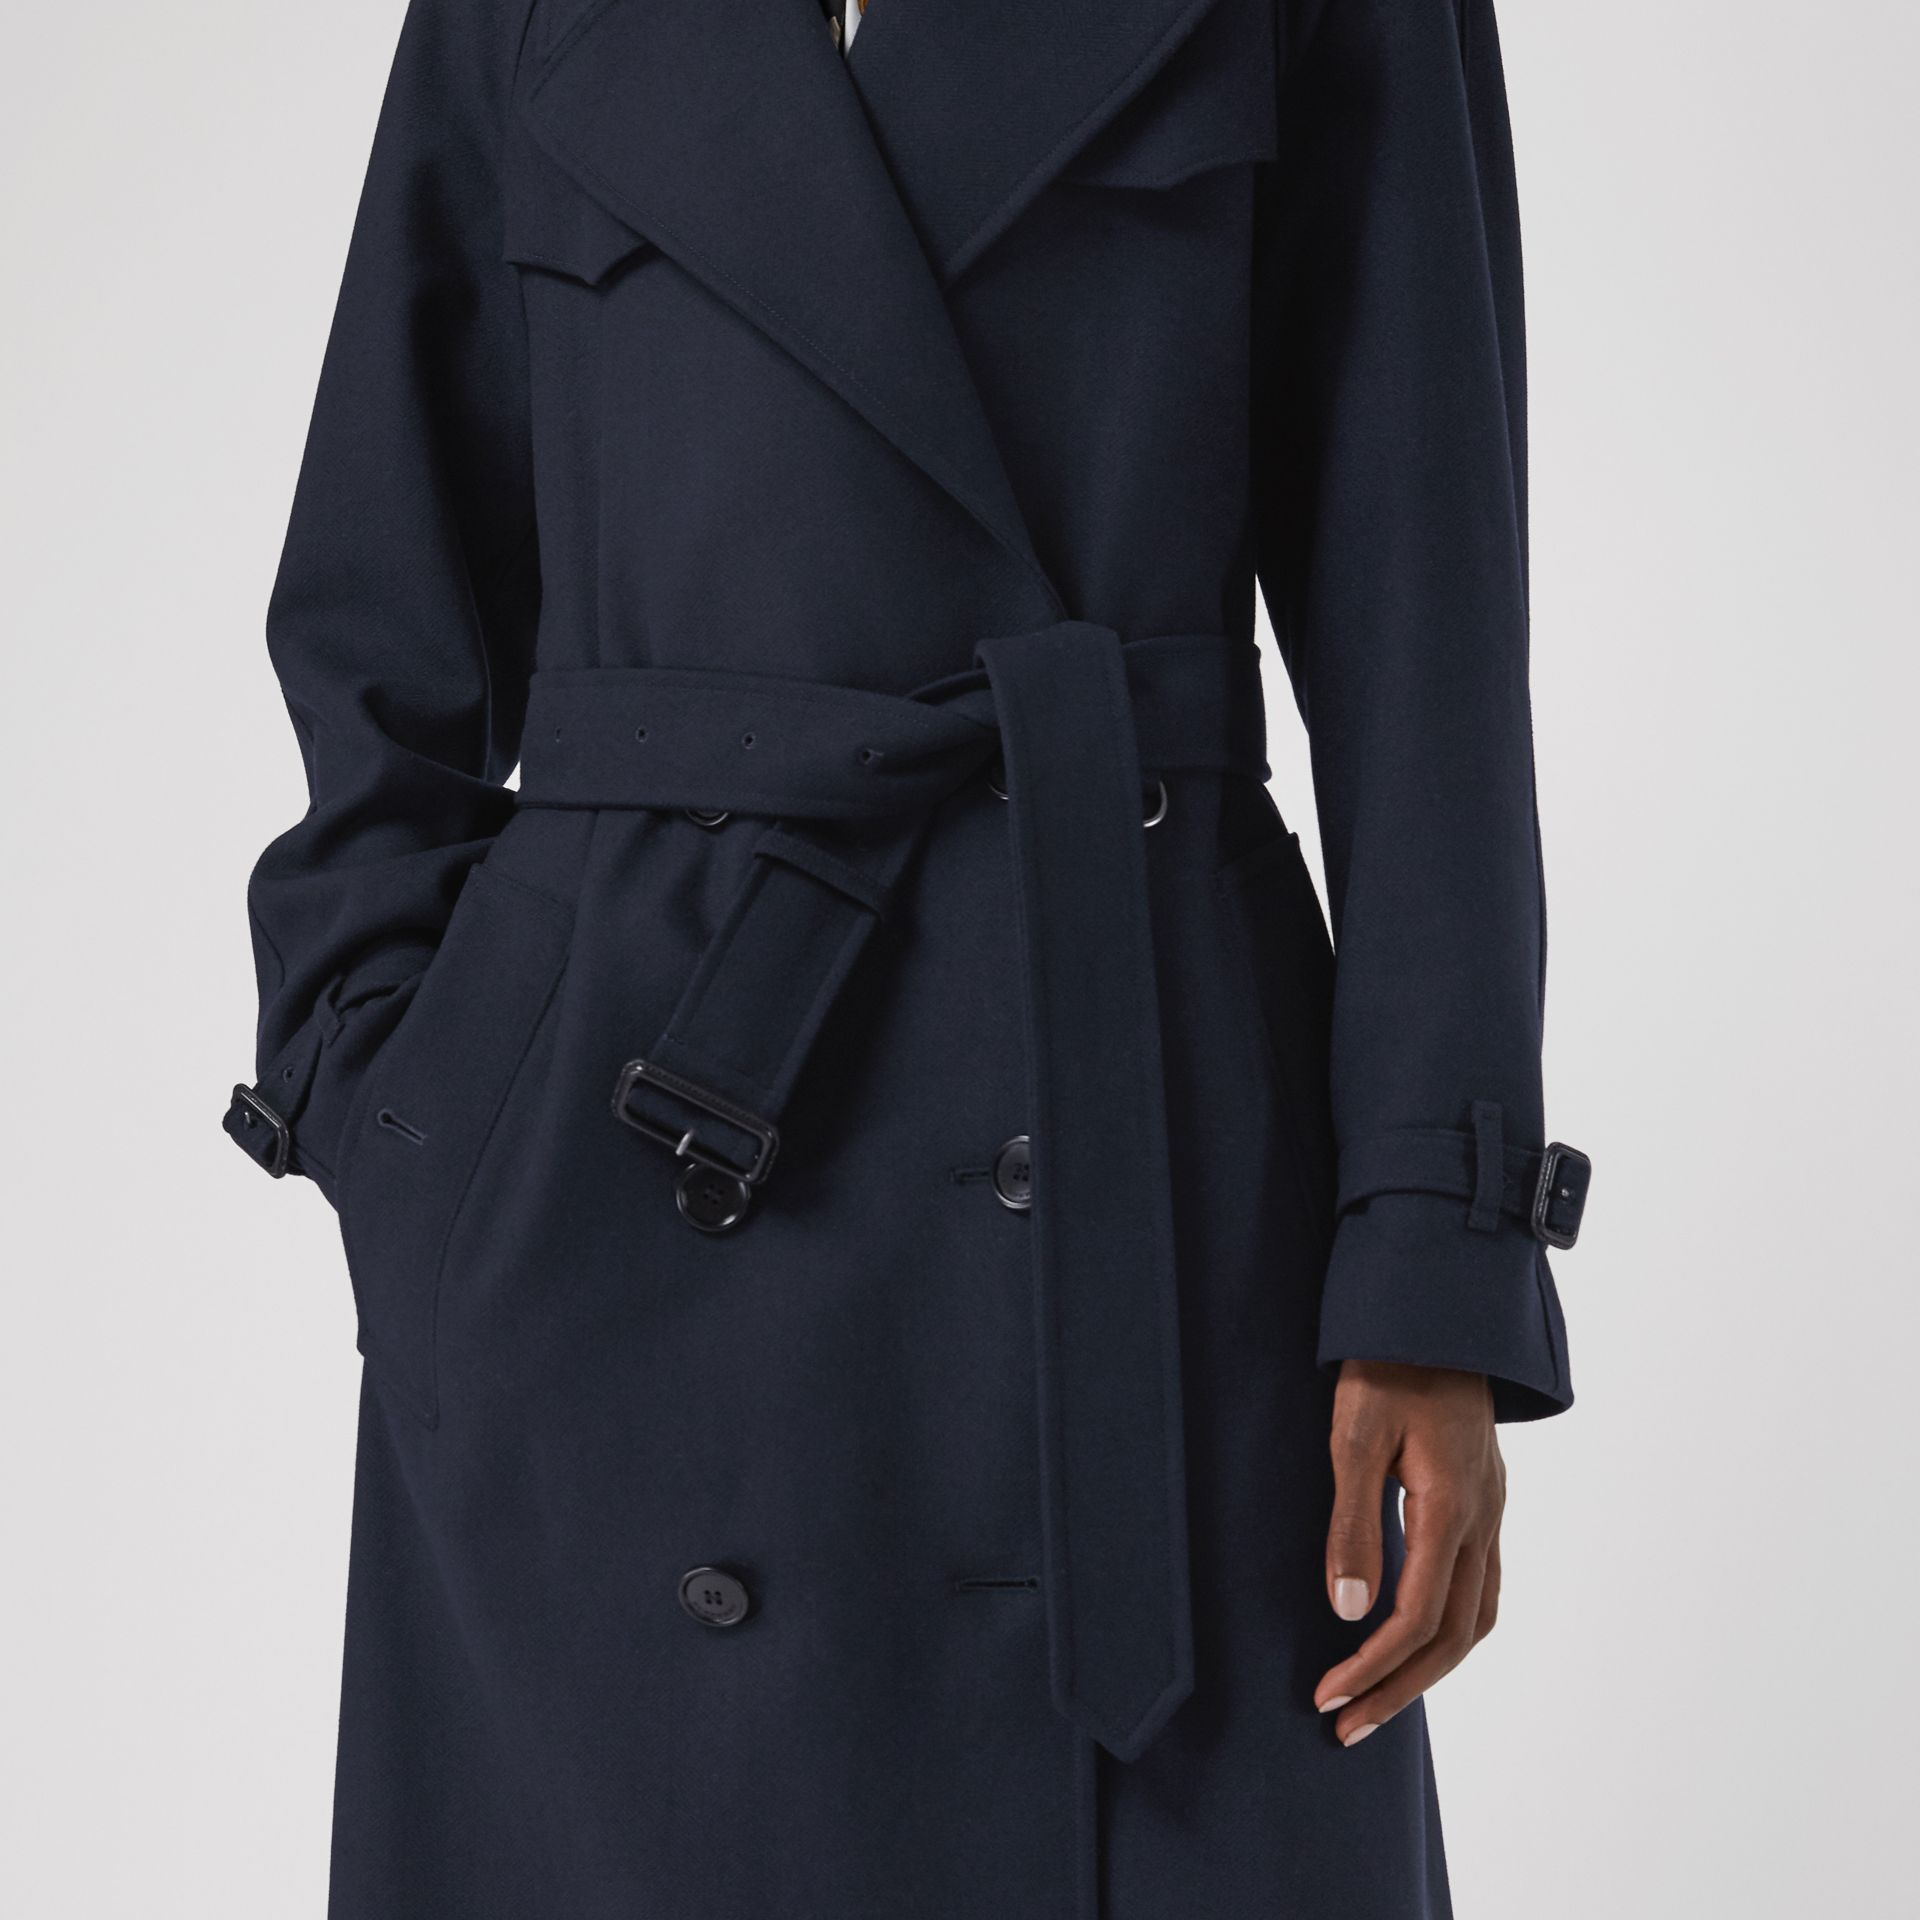 Herringbone Wool Blend Trench Coat in Navy - Women | Burberry Hong Kong - gallery image 4